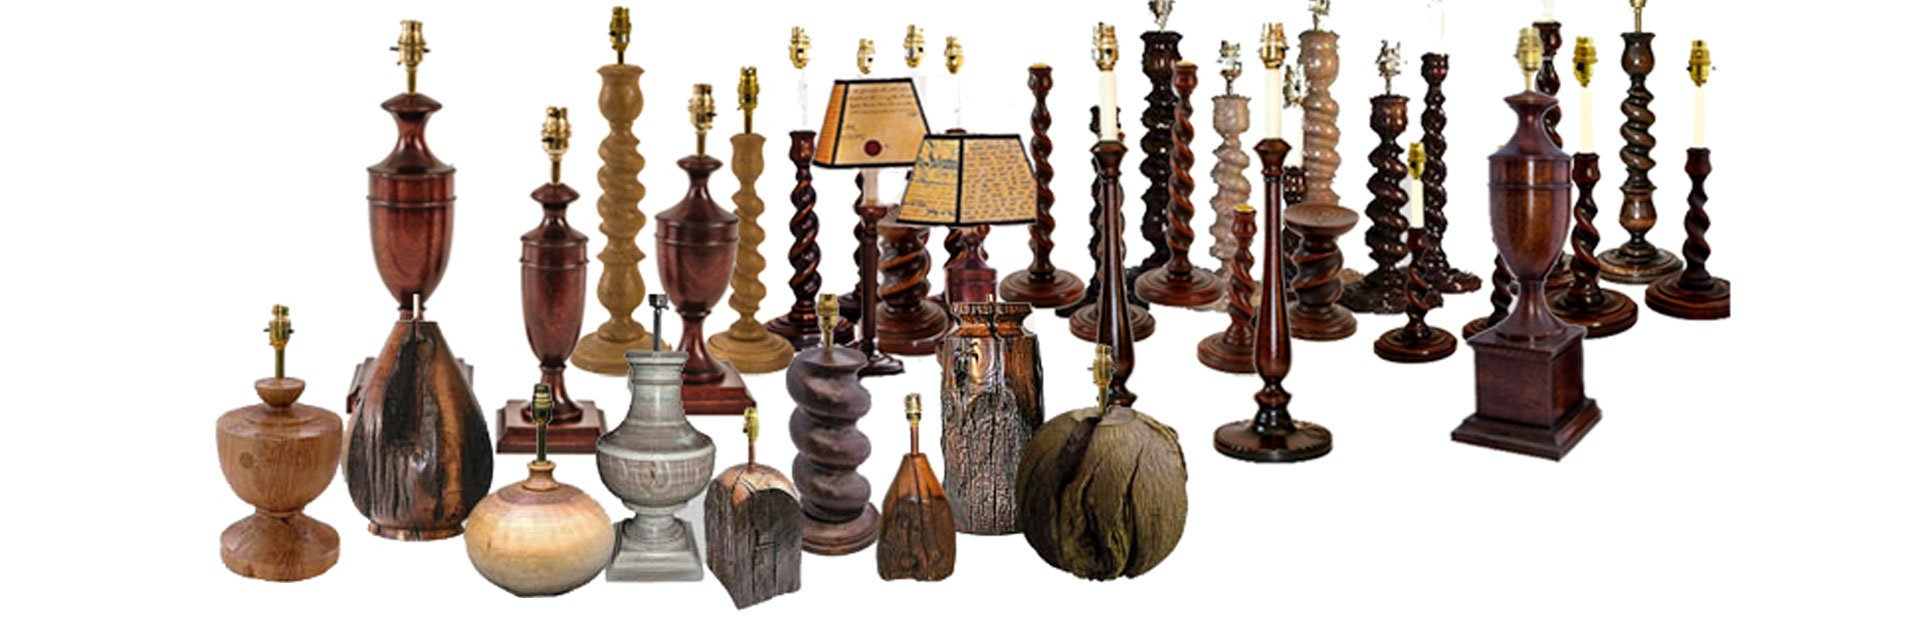 Lamps and twisted holders